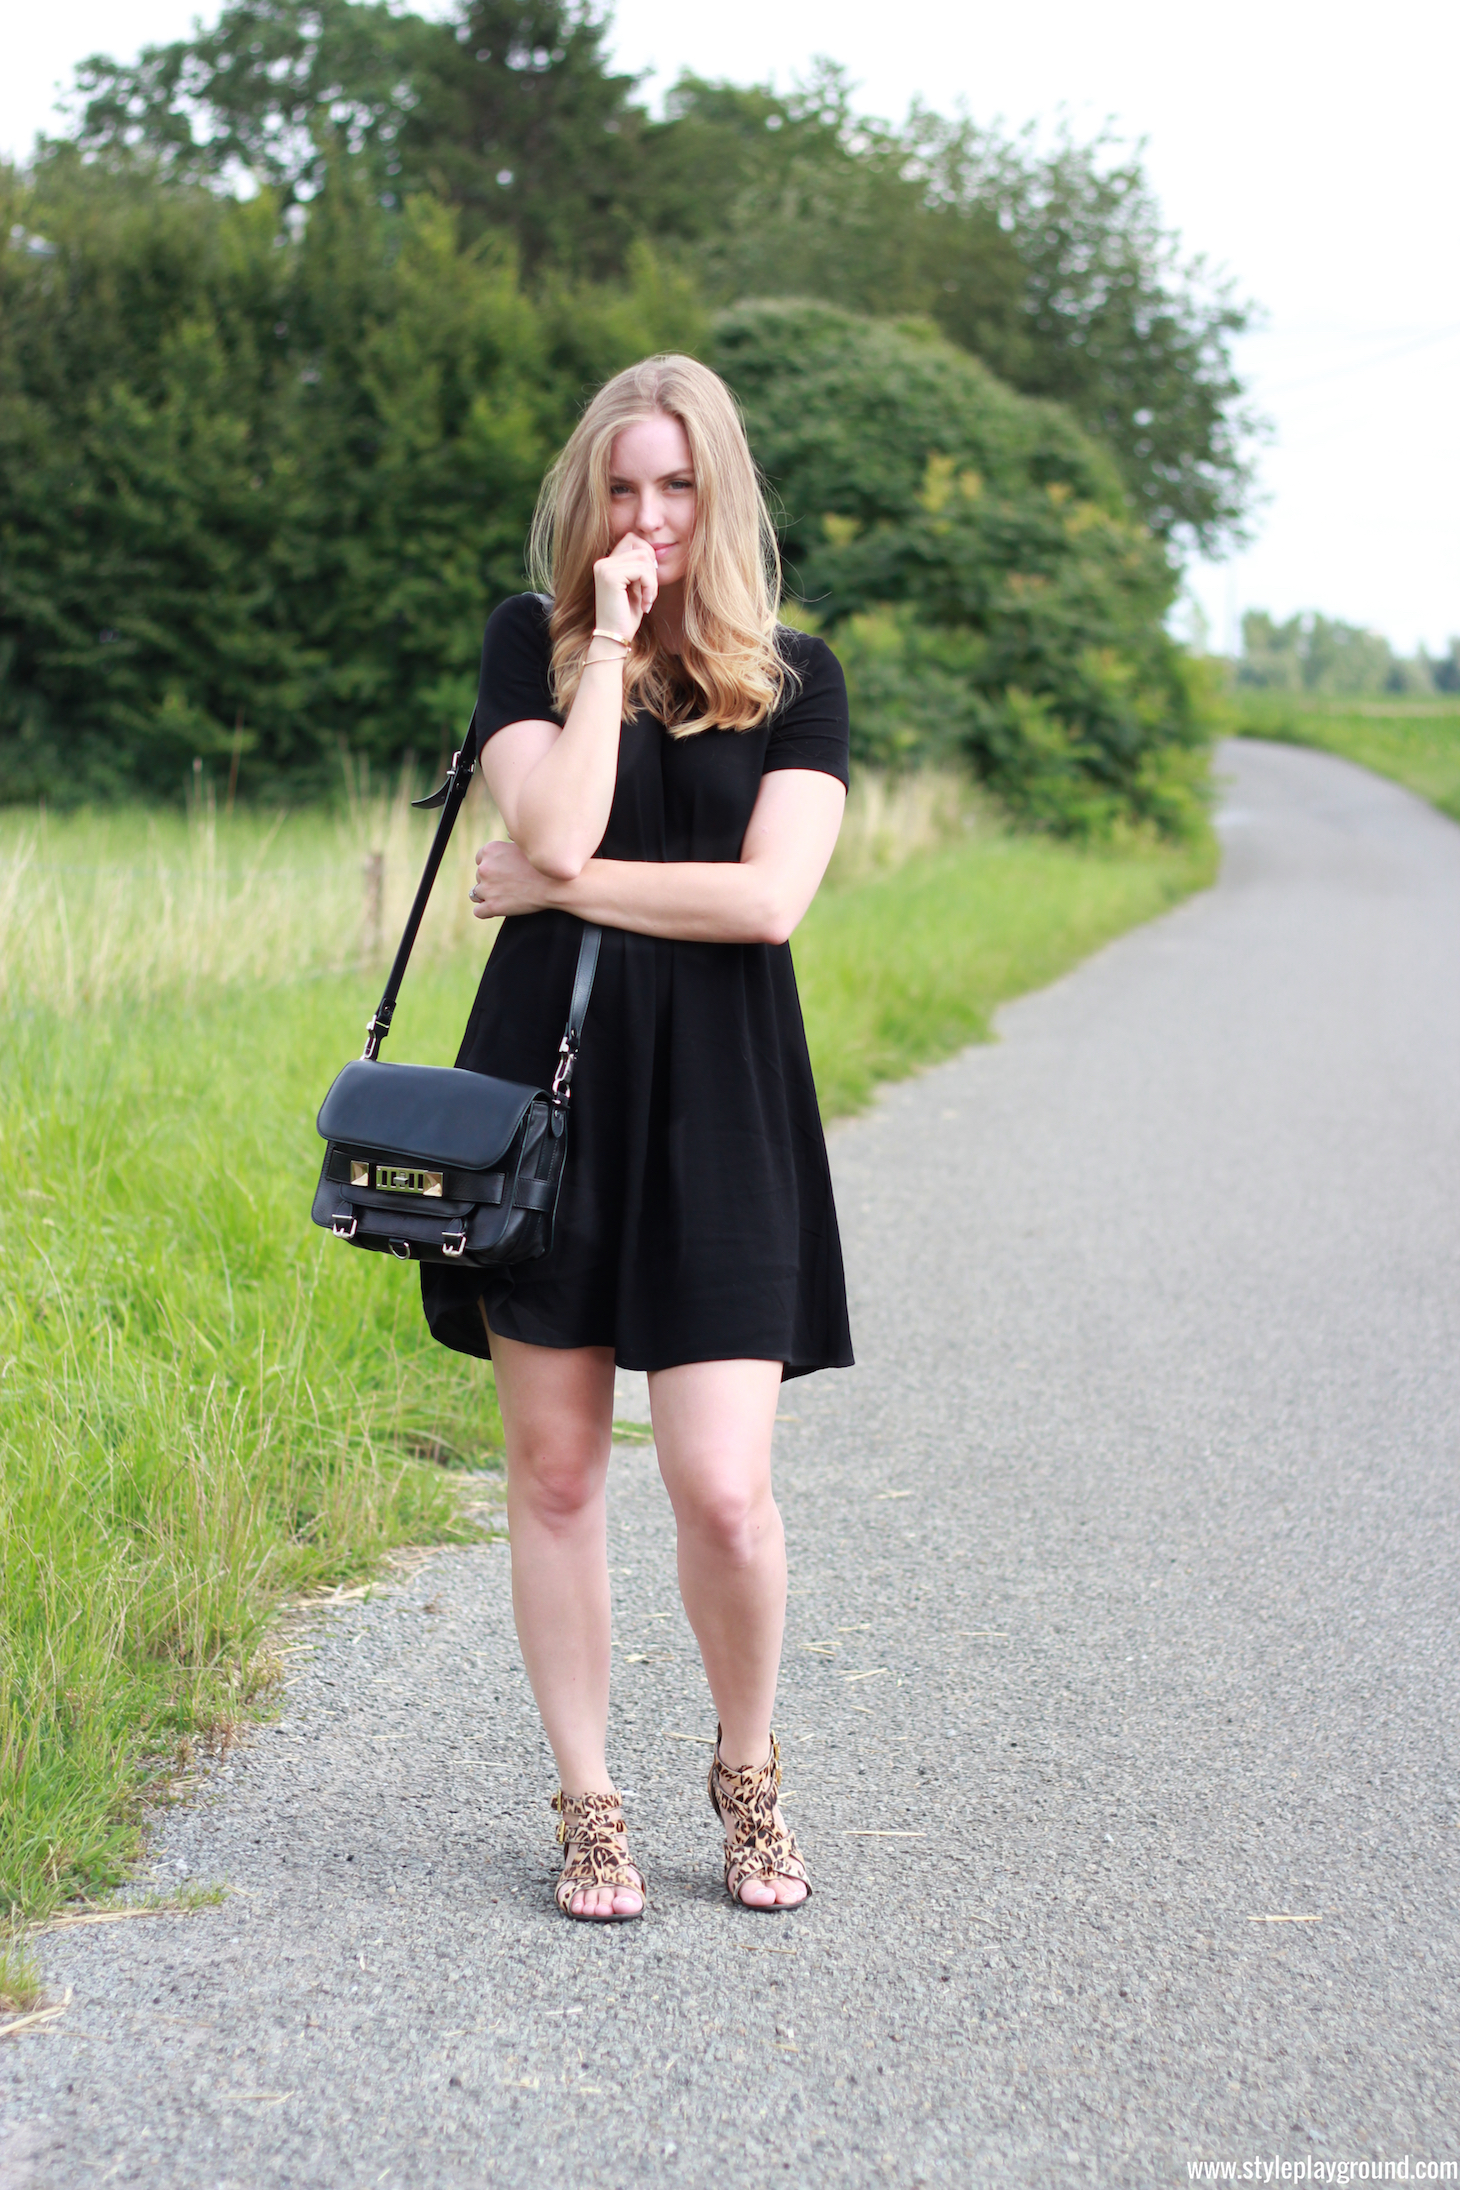 Axelle Blanpain of Style playground is wearing a Bash dress, Proenza Schouler PS11 bag, River Island shoes, Cartier love bracelet & Tiffany T bracelet